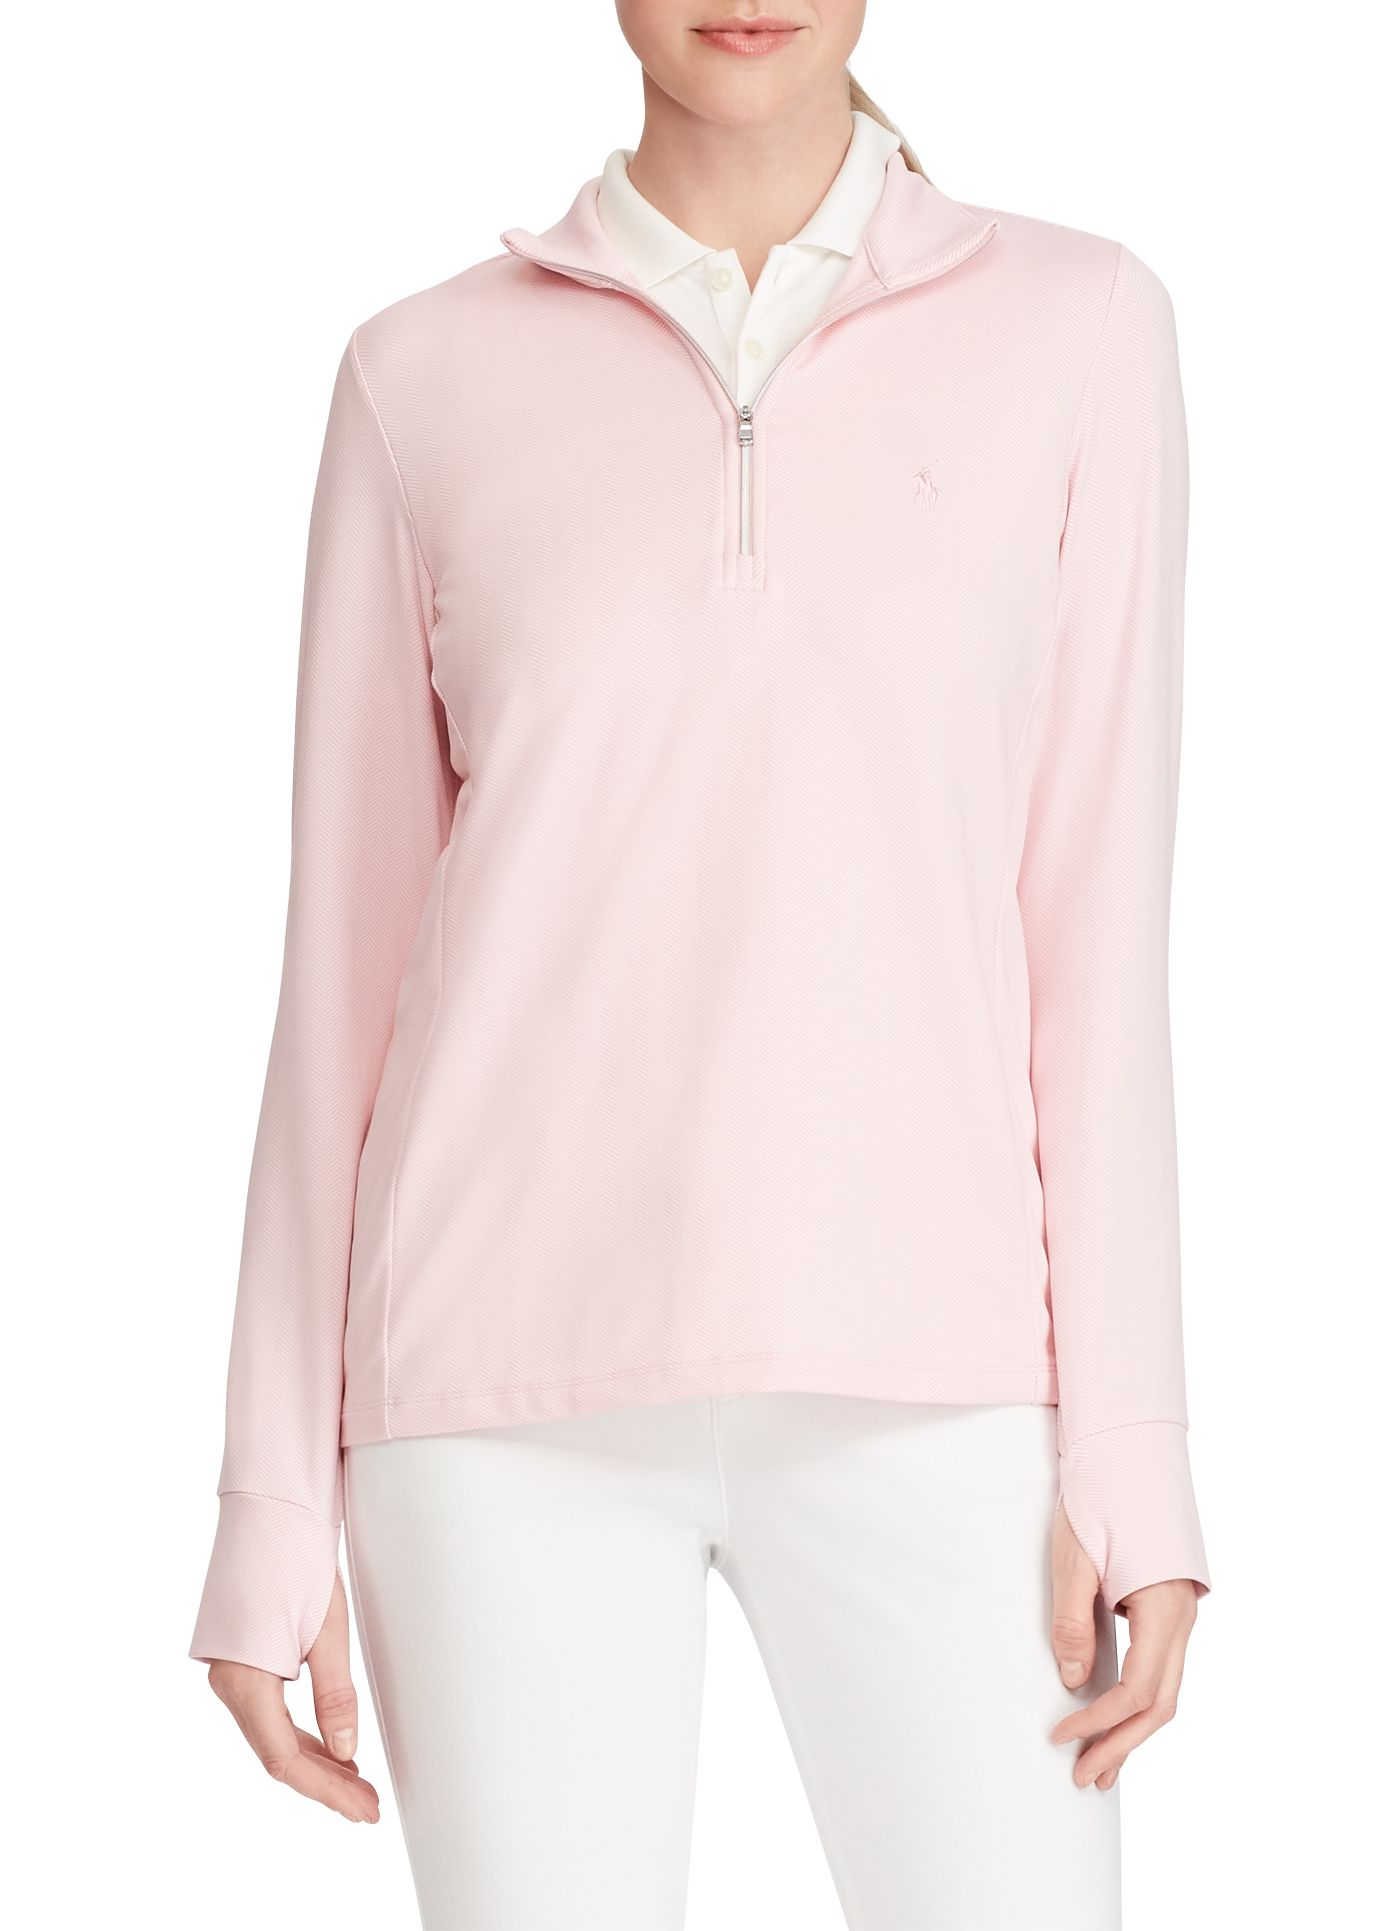 Ralph Lauren Golf Women's Herringbone Lisle Knit Golf ¼ Zip